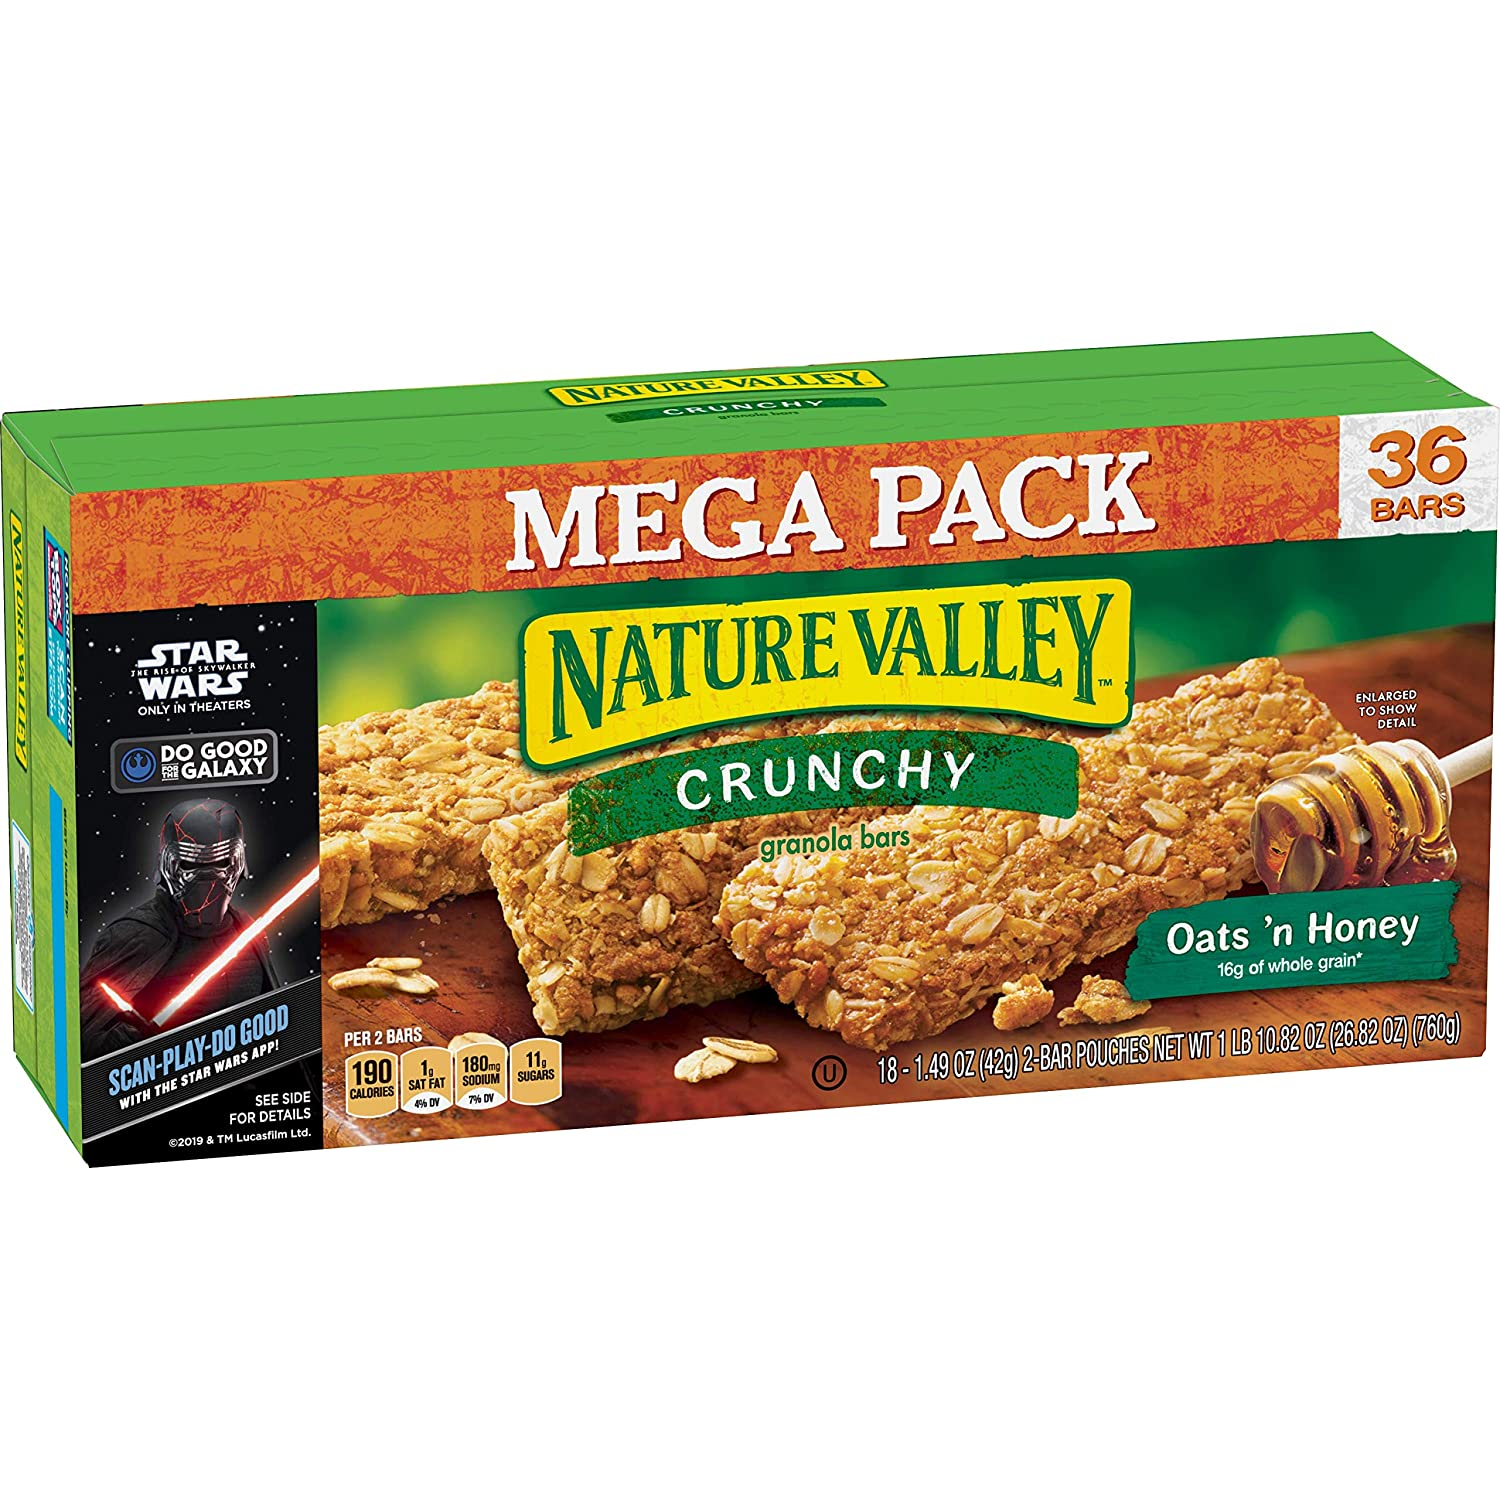 Nature Valley Oats 'n Honey Crunchy Granola Bars Box, 36 Count